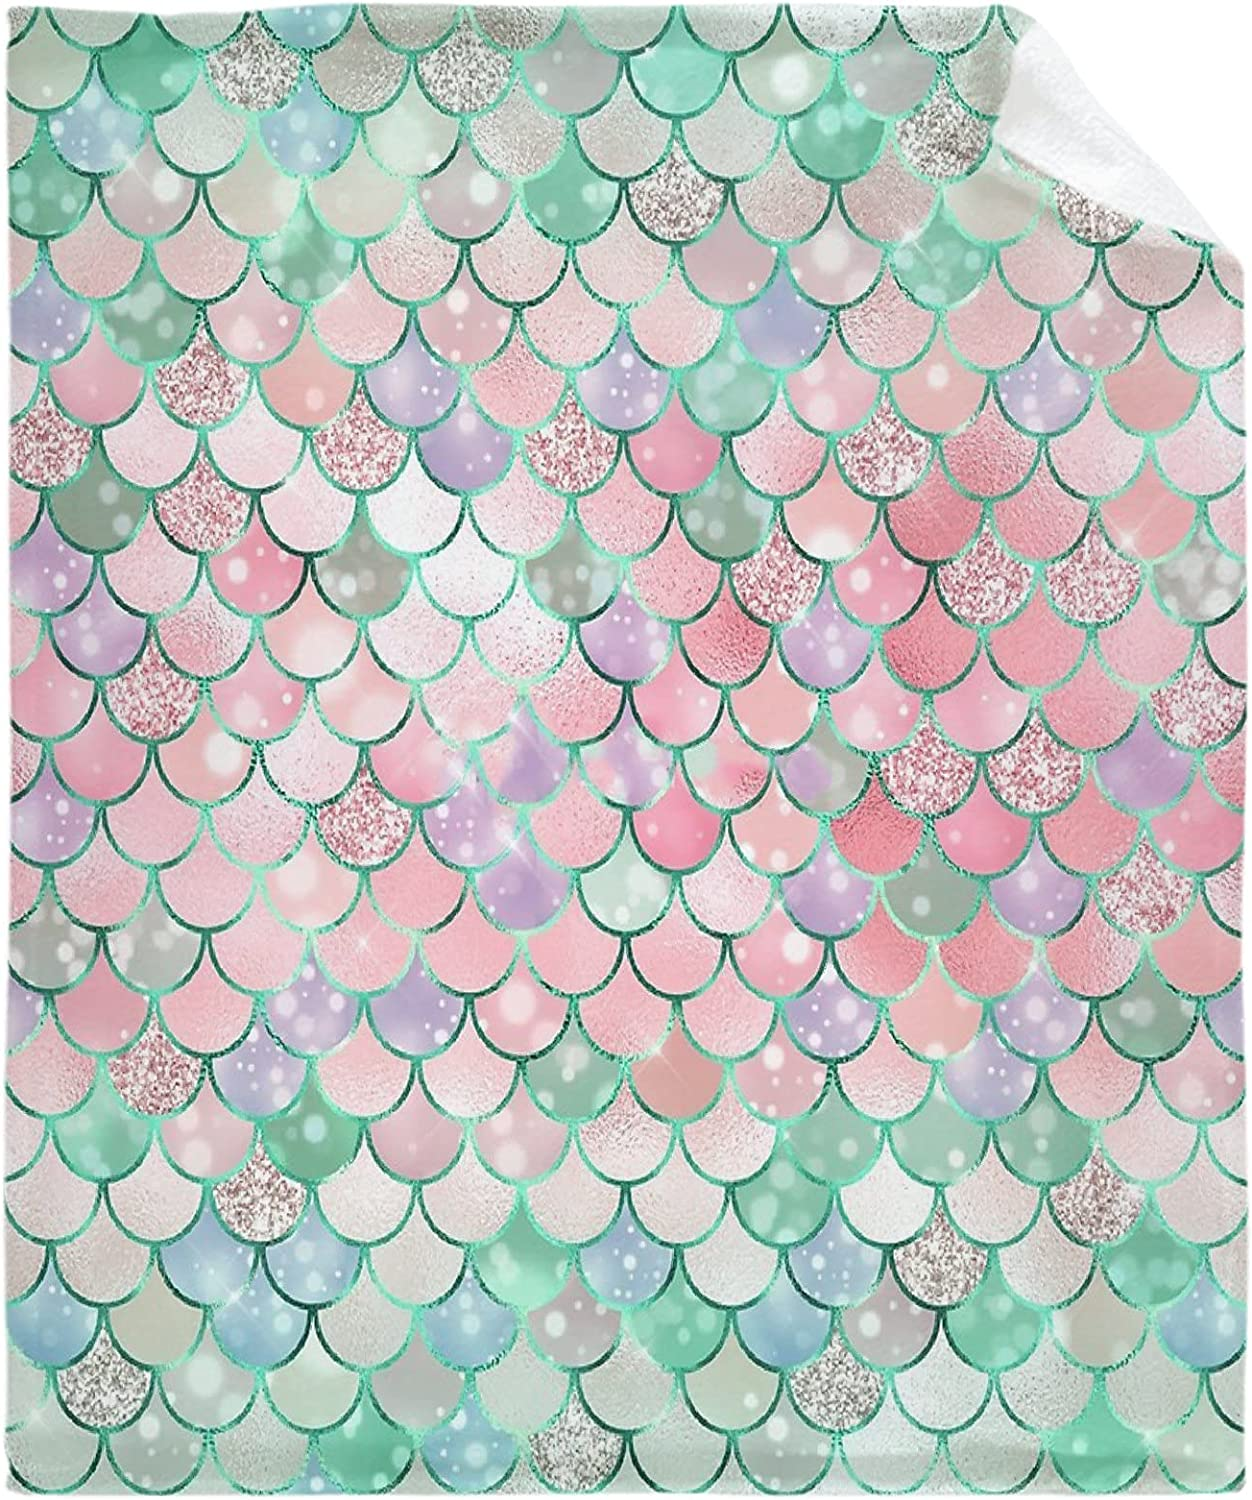 ZHONGKUI Green and Special price for a limited time Pink Pastel Sup Low price Flannel Throw Blanket Mermaid